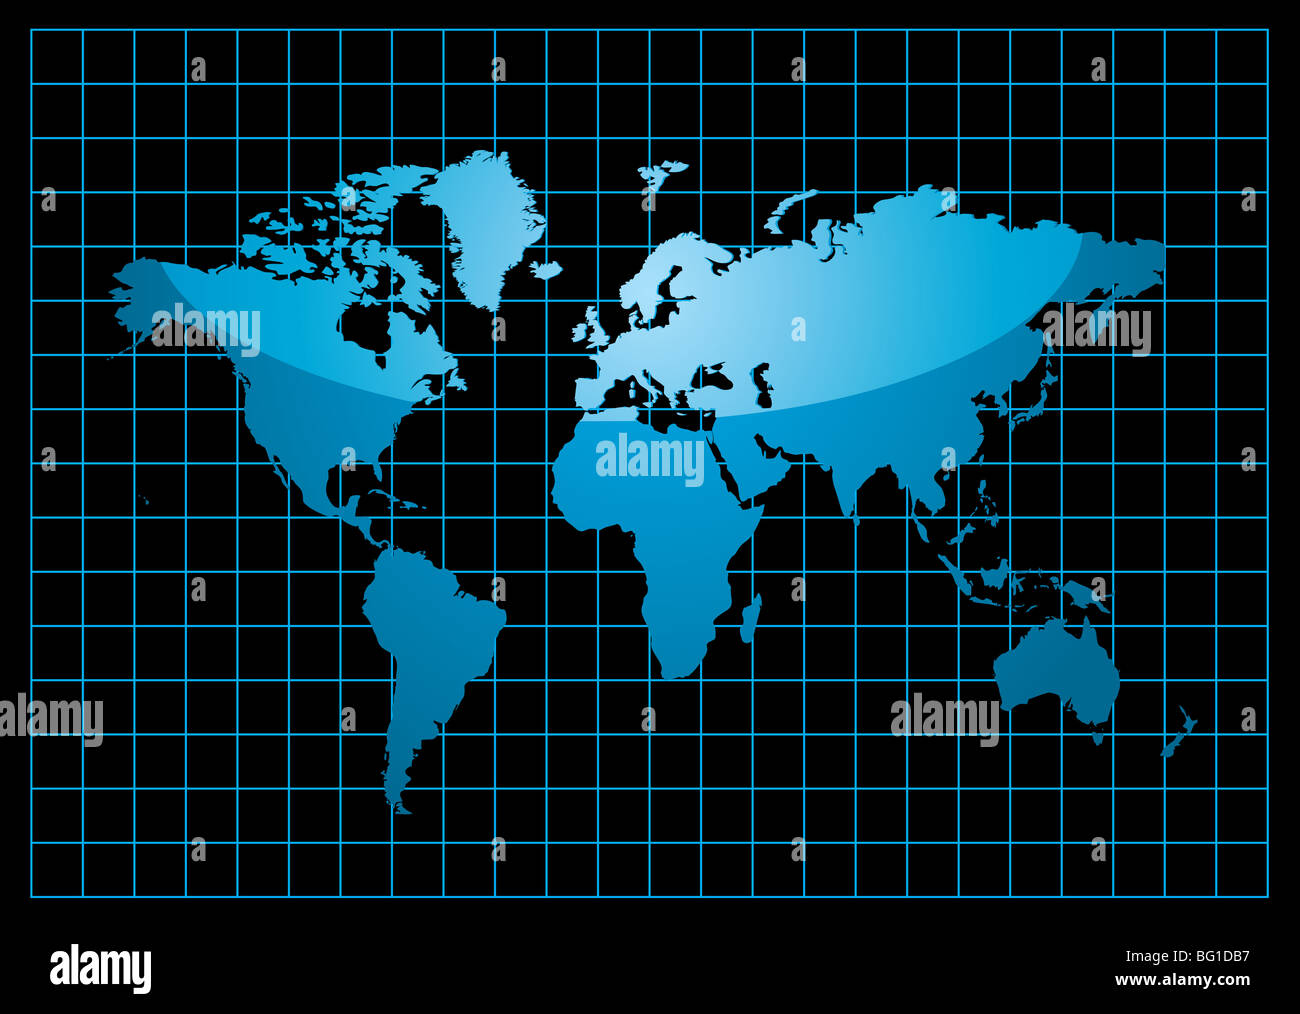 Blue world map with light reflection and grid on a black background blue world map with light reflection and grid on a black background gumiabroncs Images